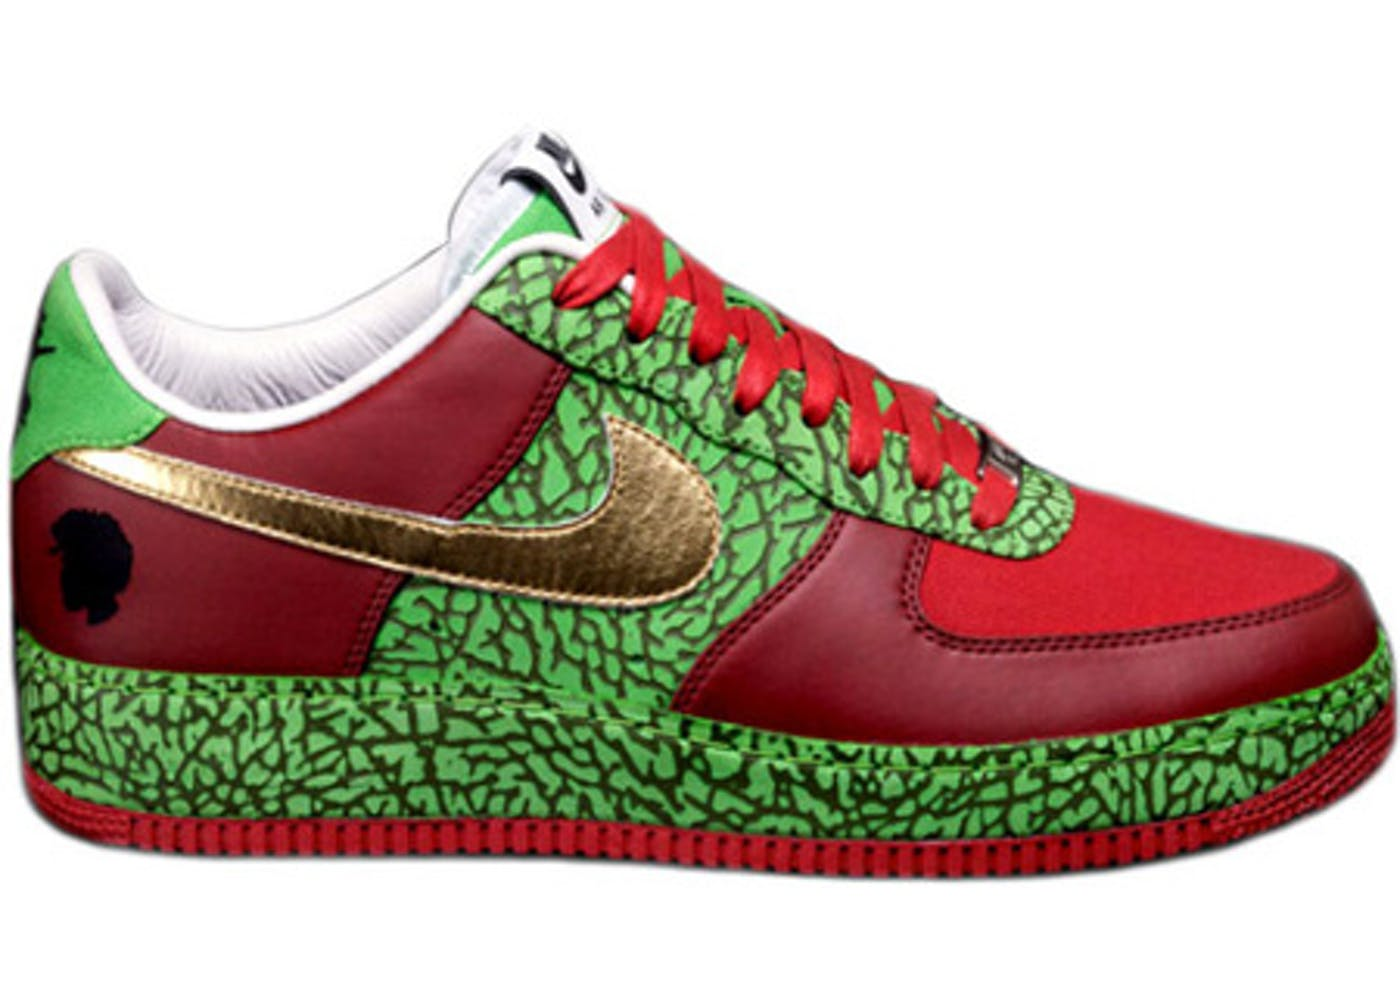 new products 8588d 43ec0 ... Air Force 1 Low Questlove